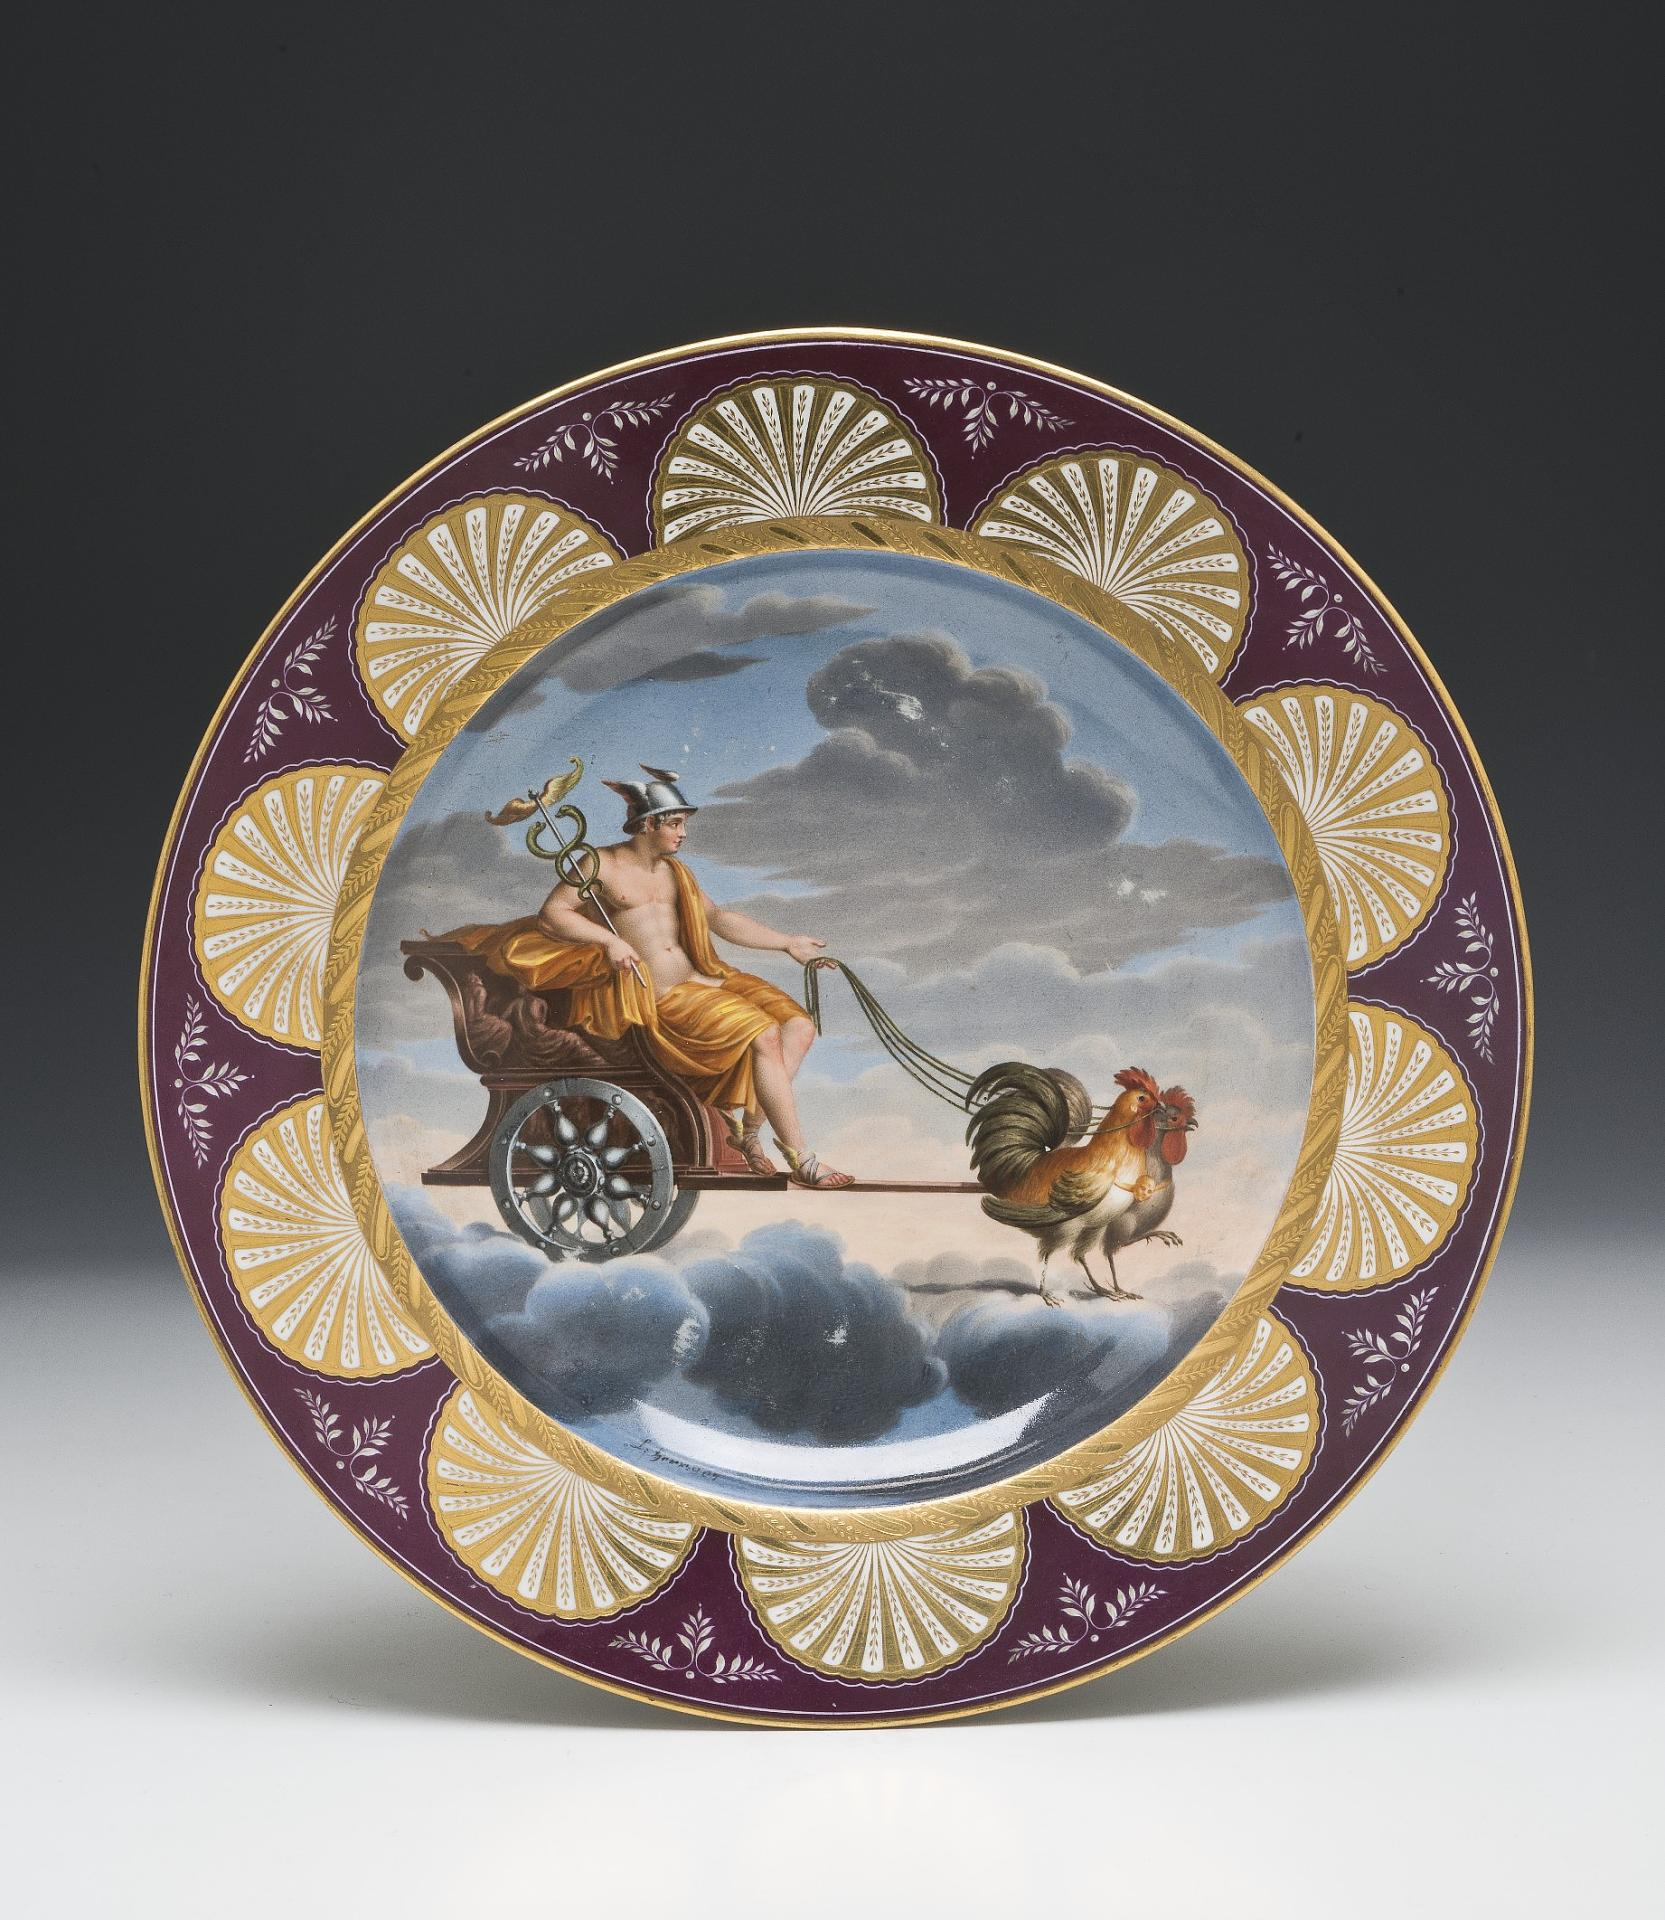 Plate: Allegory of the planet Mercury, Austria, XIX century, solid porcelain